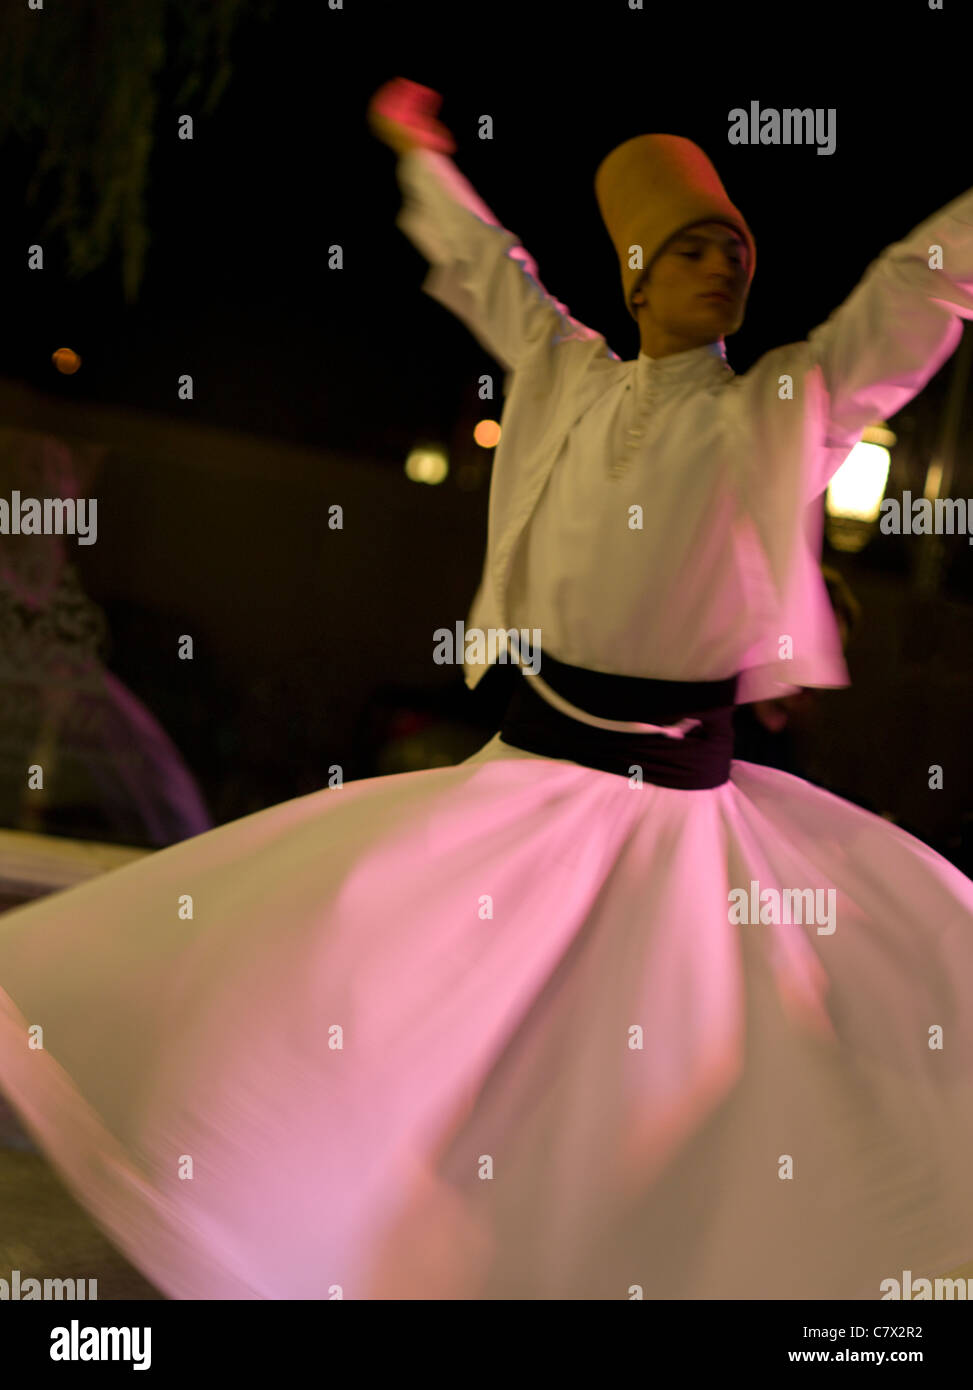 Sufi Whirling Dervish Dancer Istanbul, Turkey. Wearing sikke hat Stock Photo